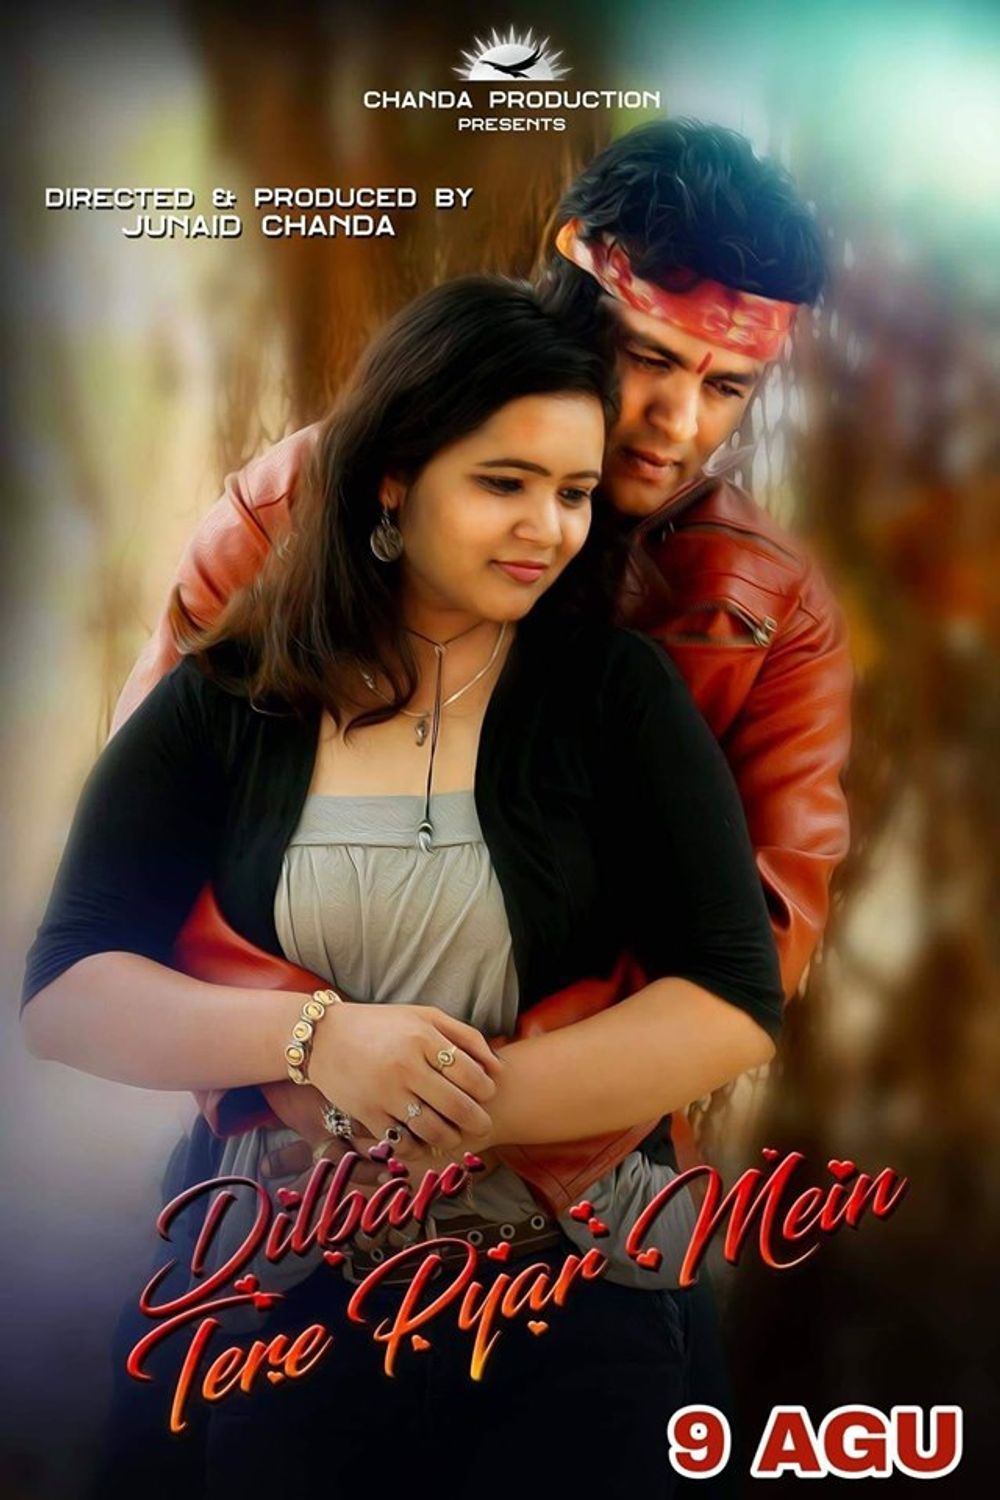 Hindi Movie Dilbar Tere Pyar Mein Photos, Videos, Reviews